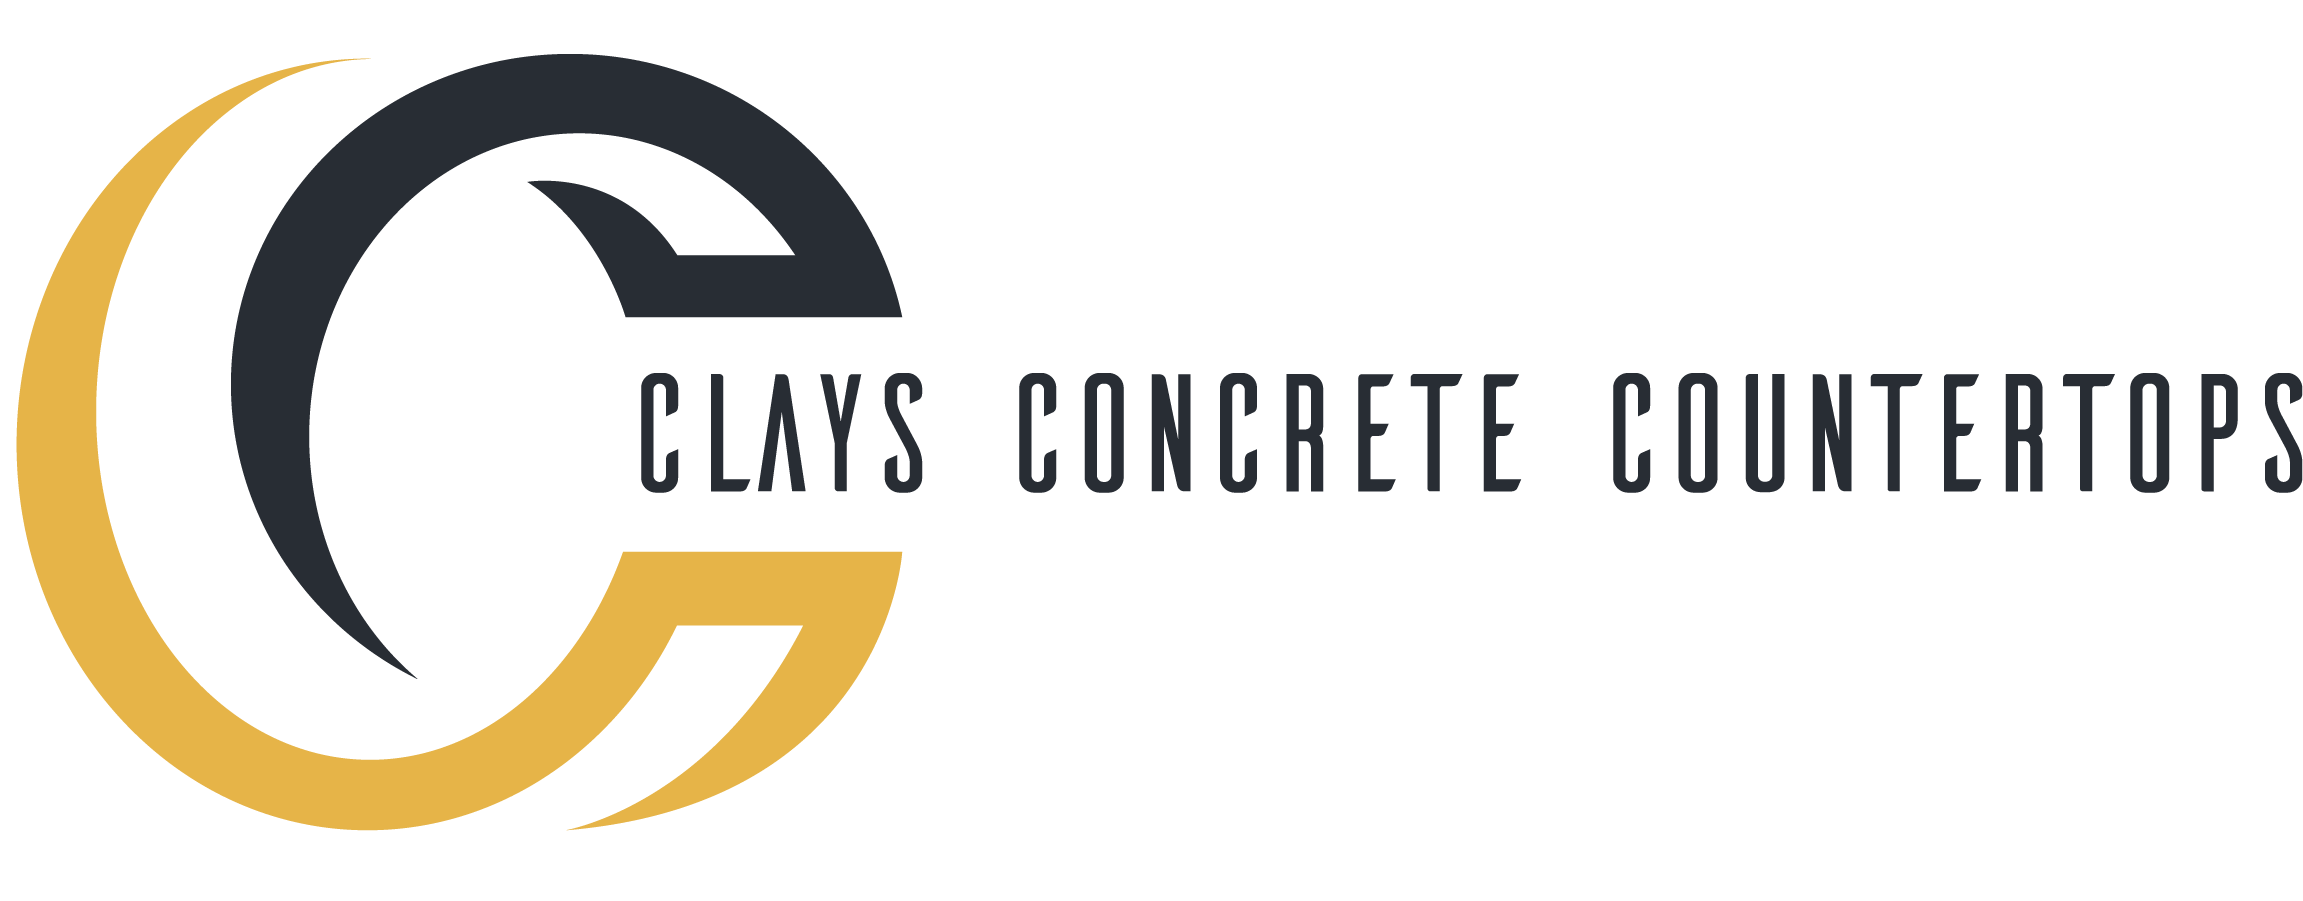 Clays Concrete Countertops